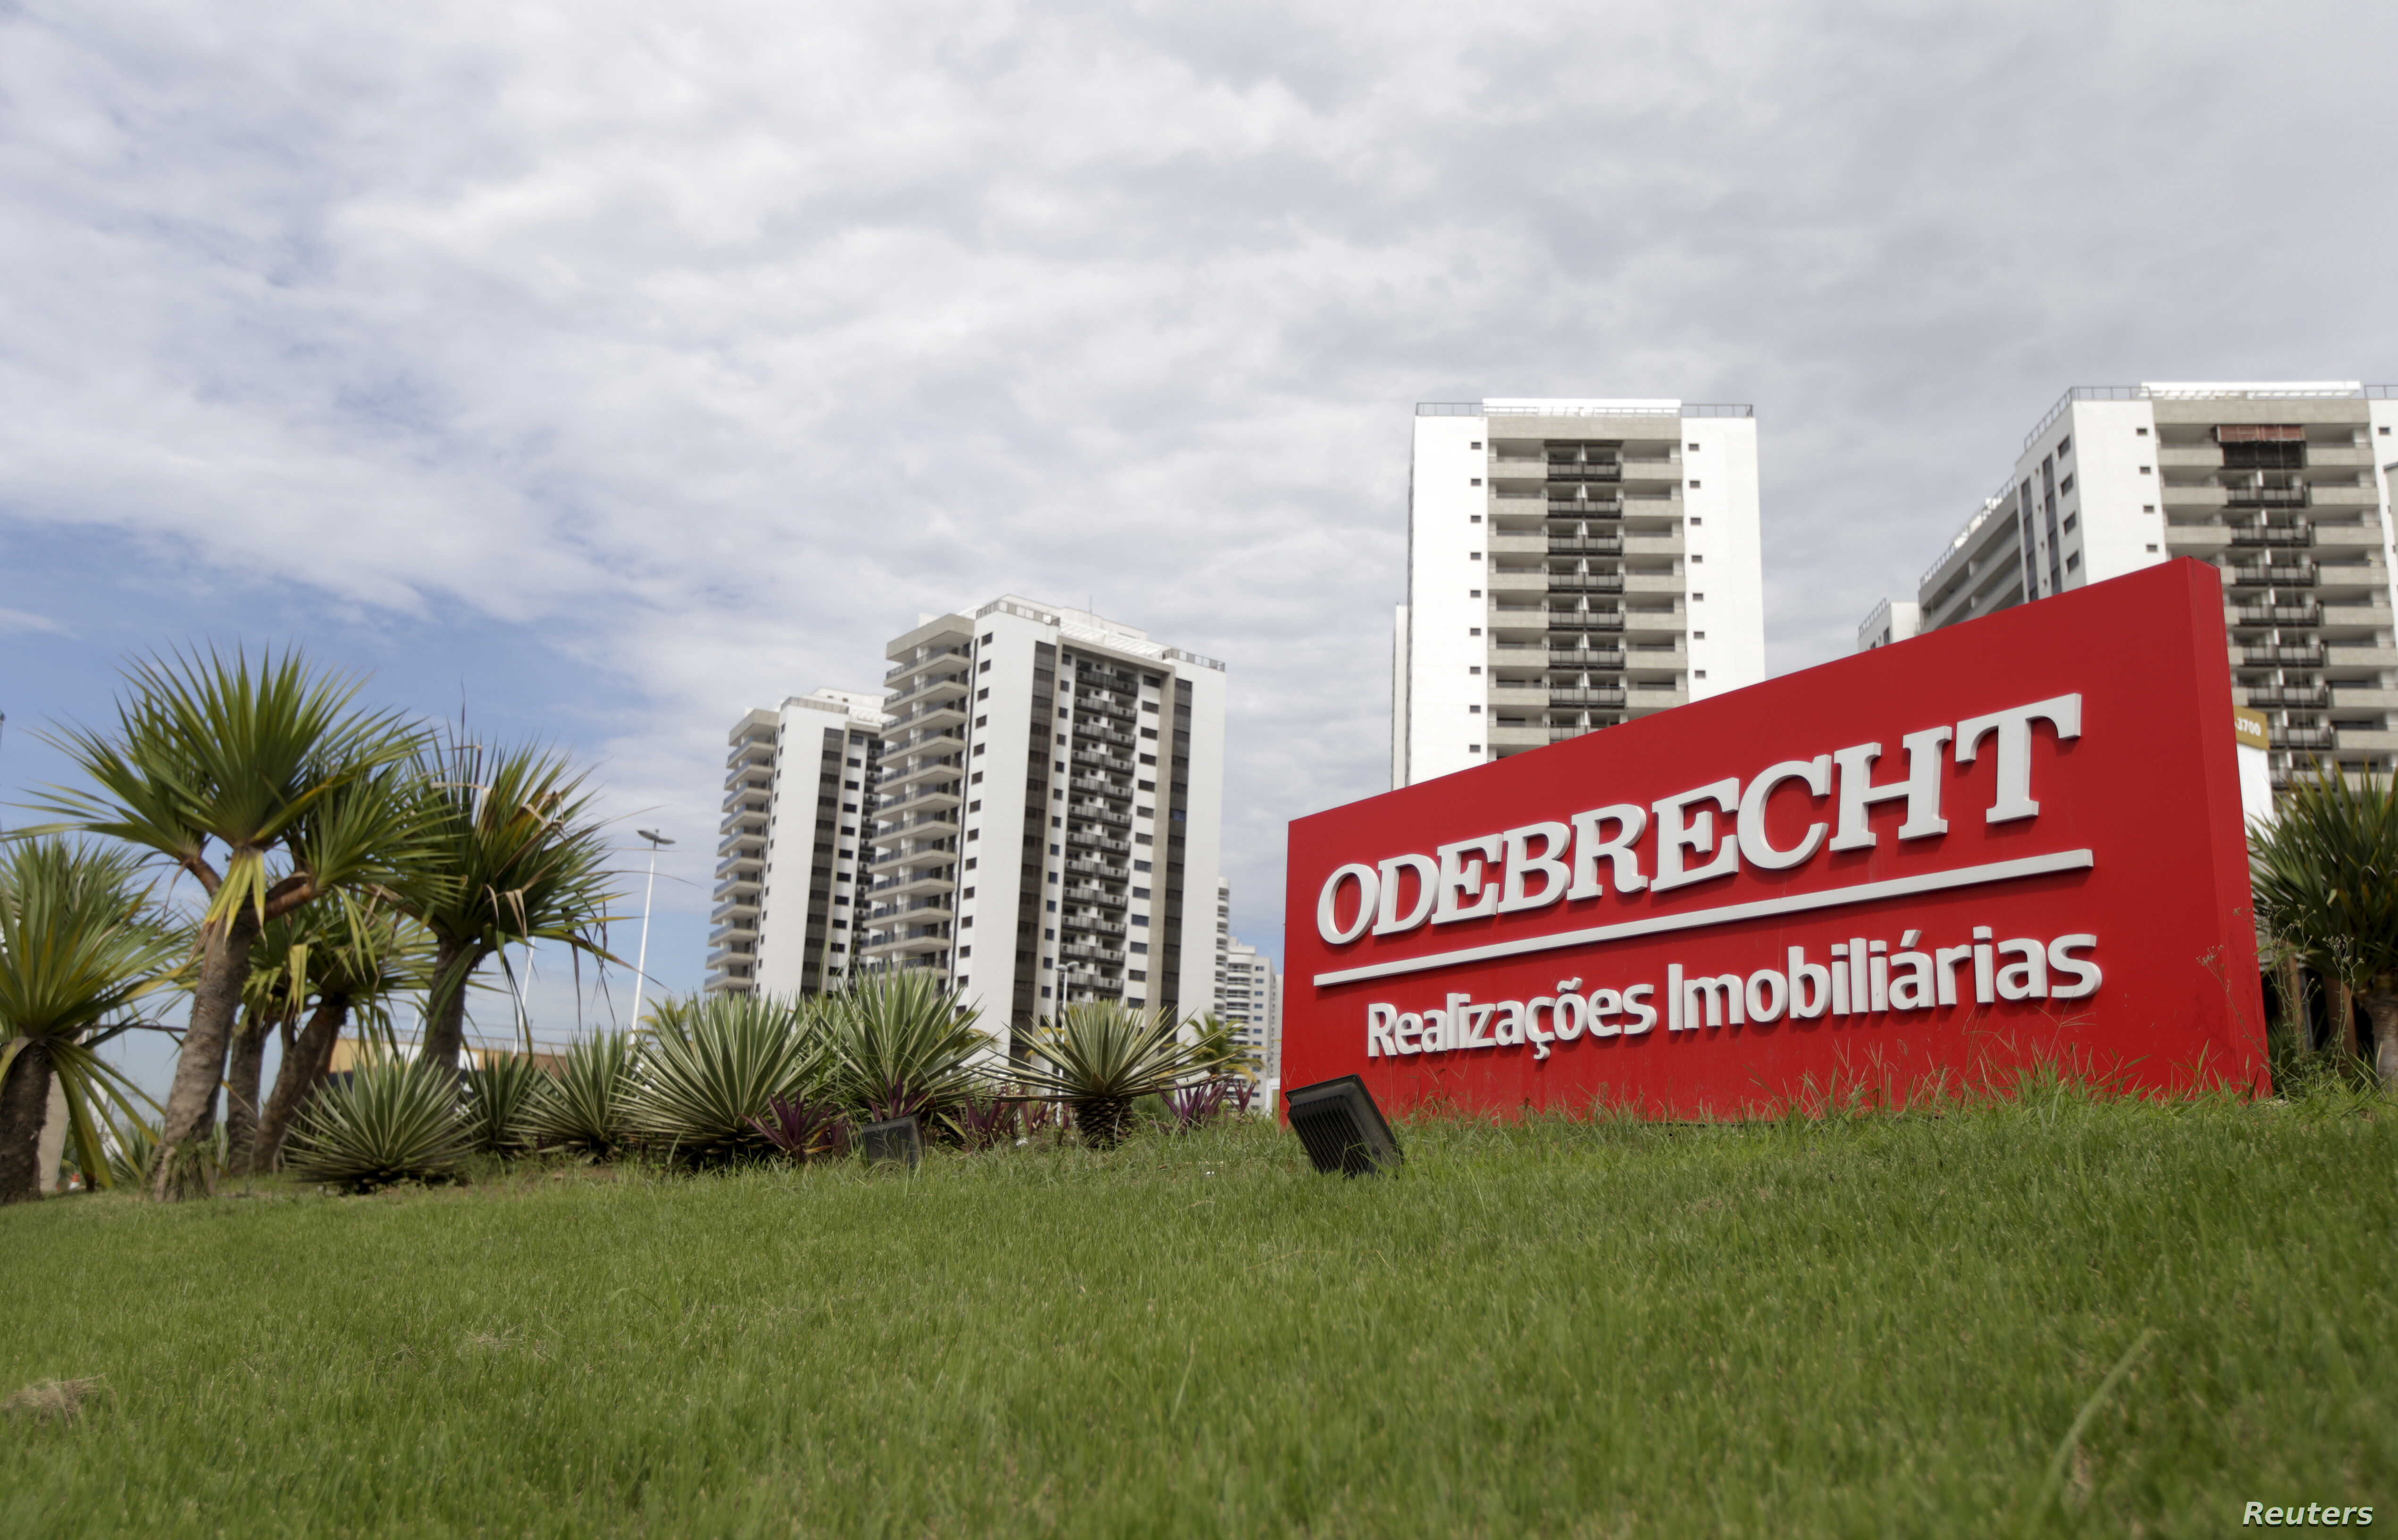 A sign of the Odebrecht SA construction conglomerate is pictured in Rio de Janeiro, Brazil, Feb. 26, 2016.